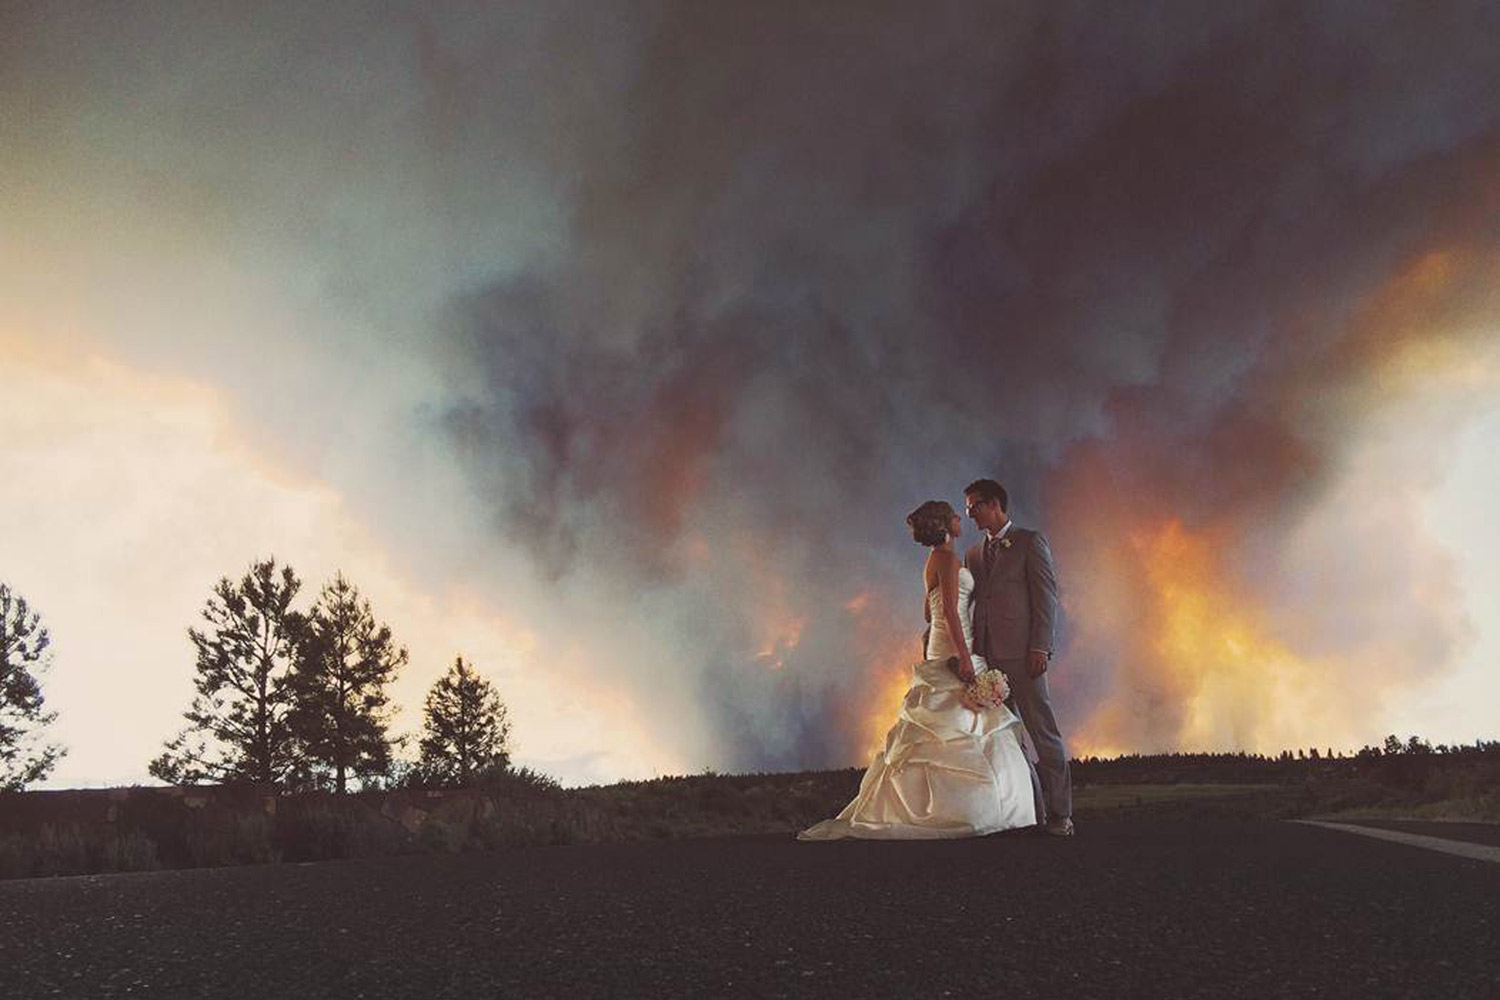 In this Saturday, June 7, 2014, photo provided by Josh Newton, newlyweds Michael Wolber and April Hartley pose for a picture near Bend, Ore., as a wildfire burns in the background.